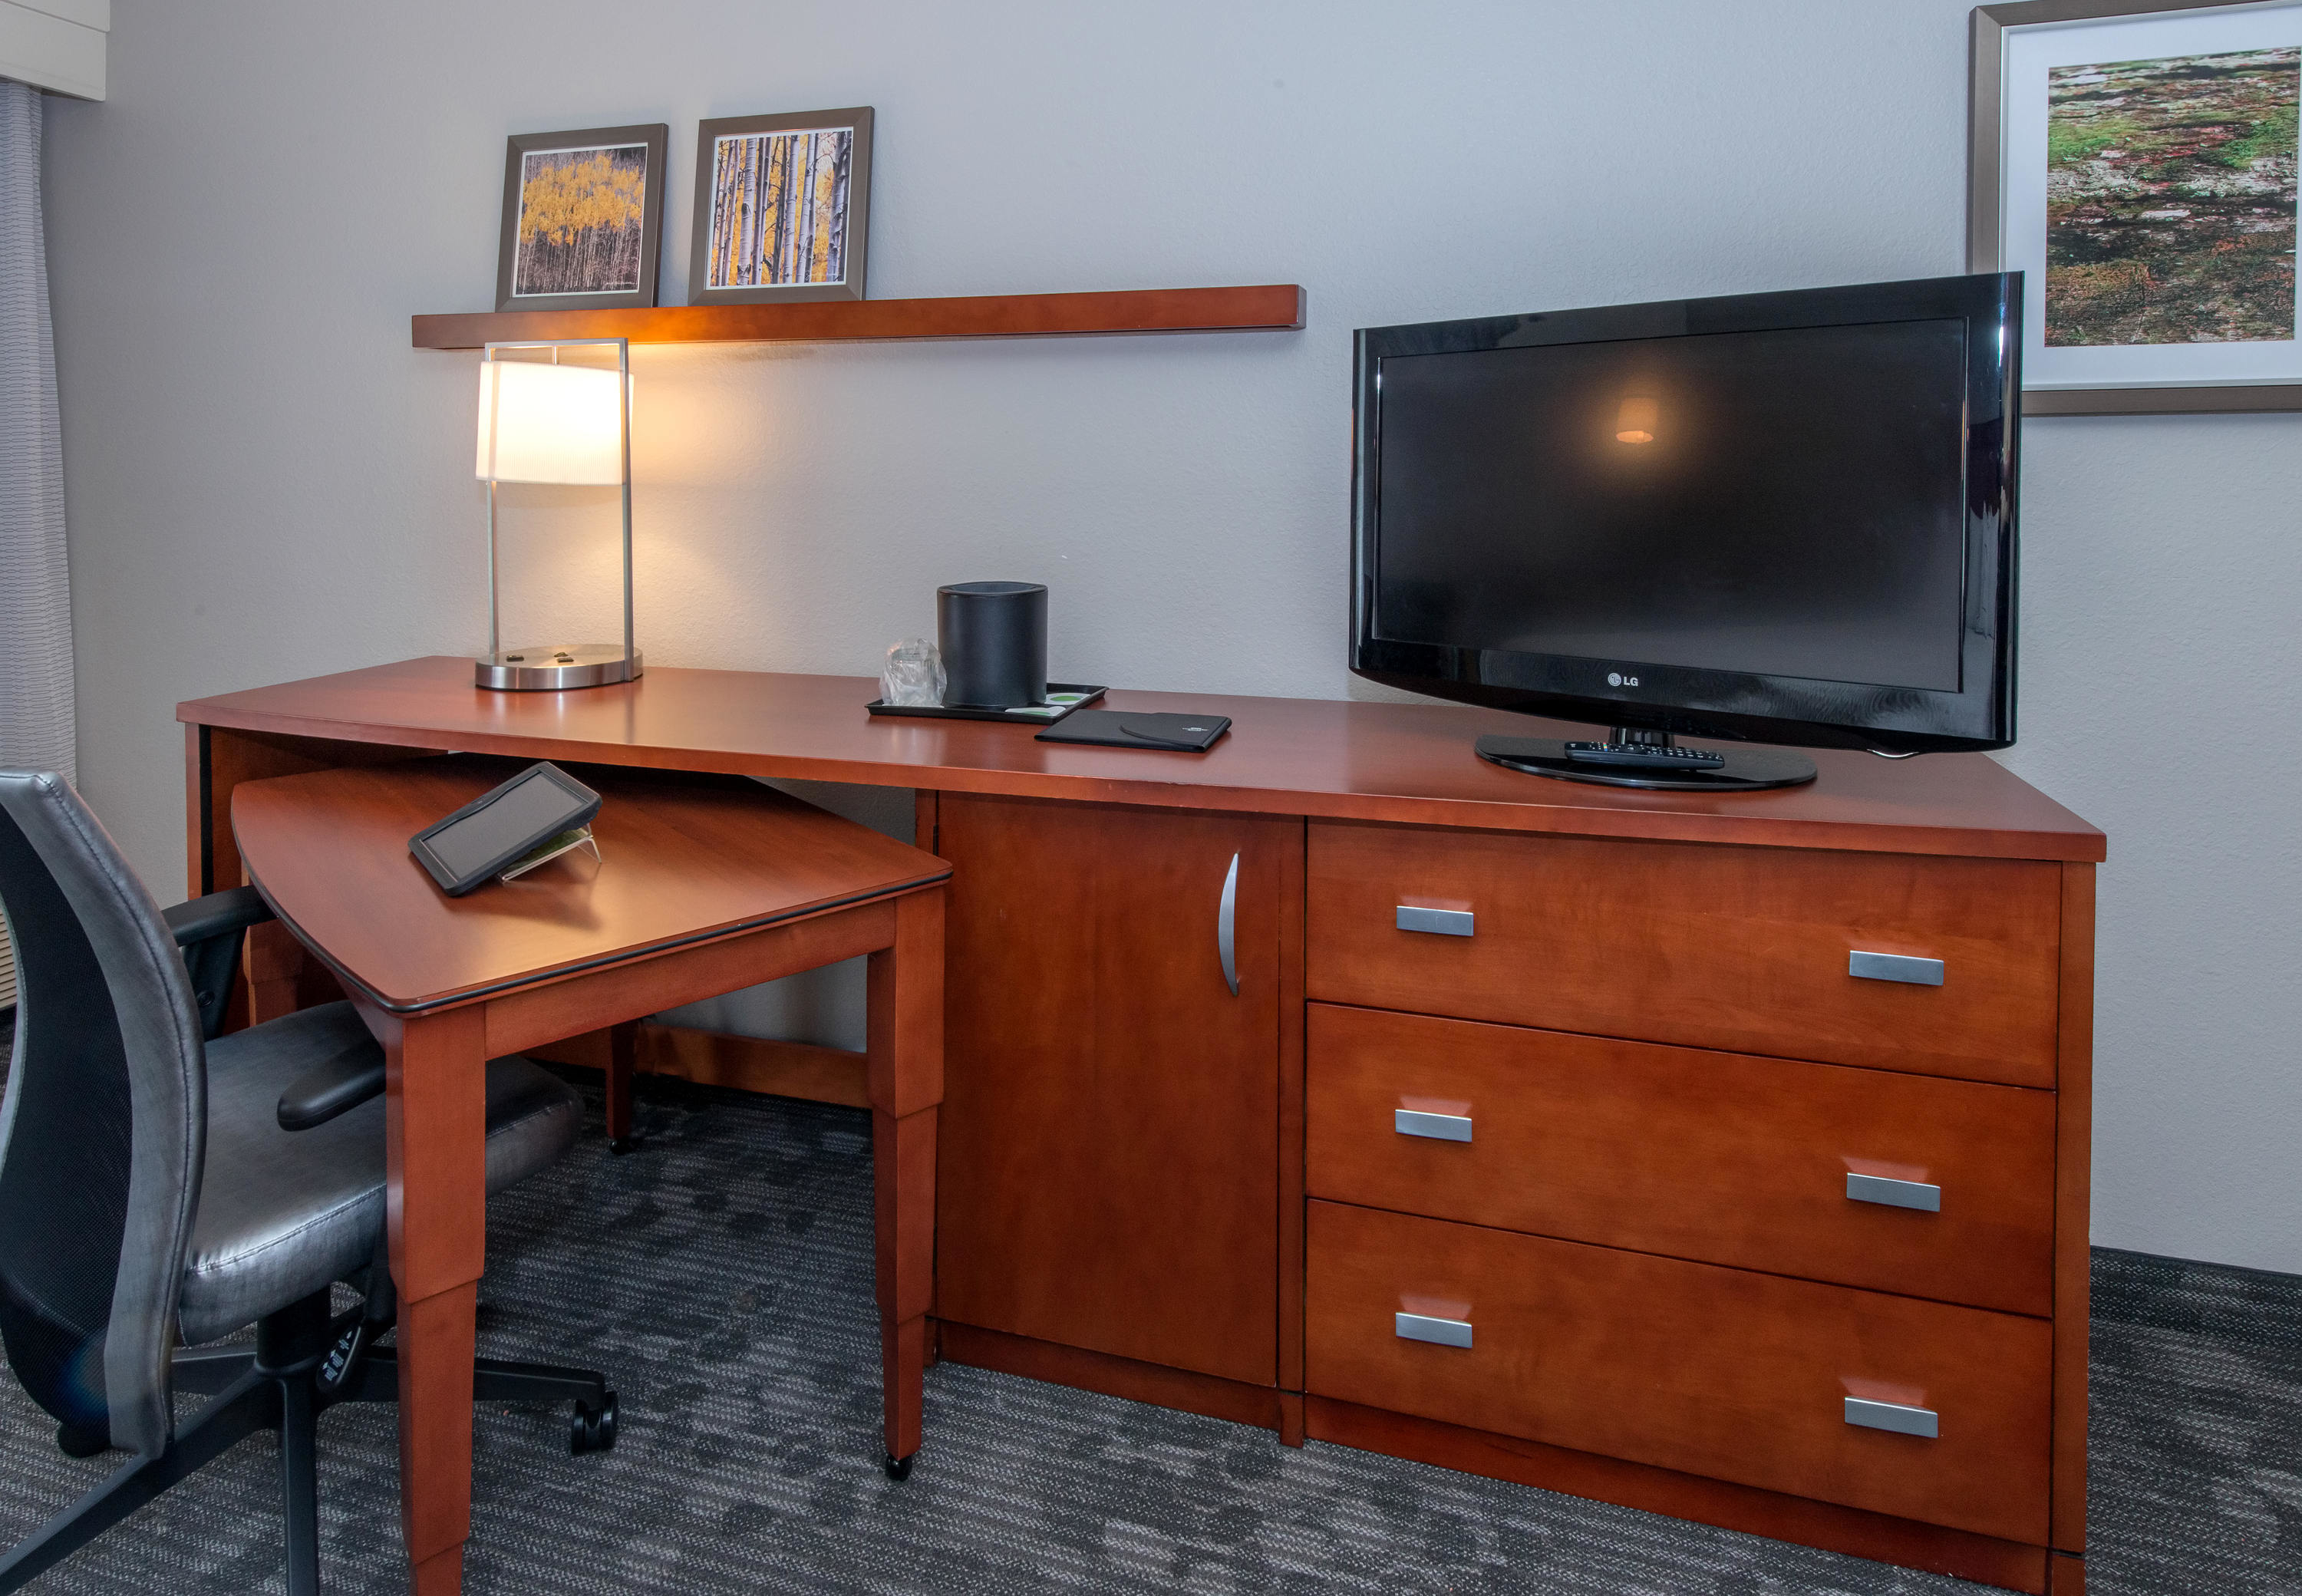 Courtyard by Marriott Albany image 14